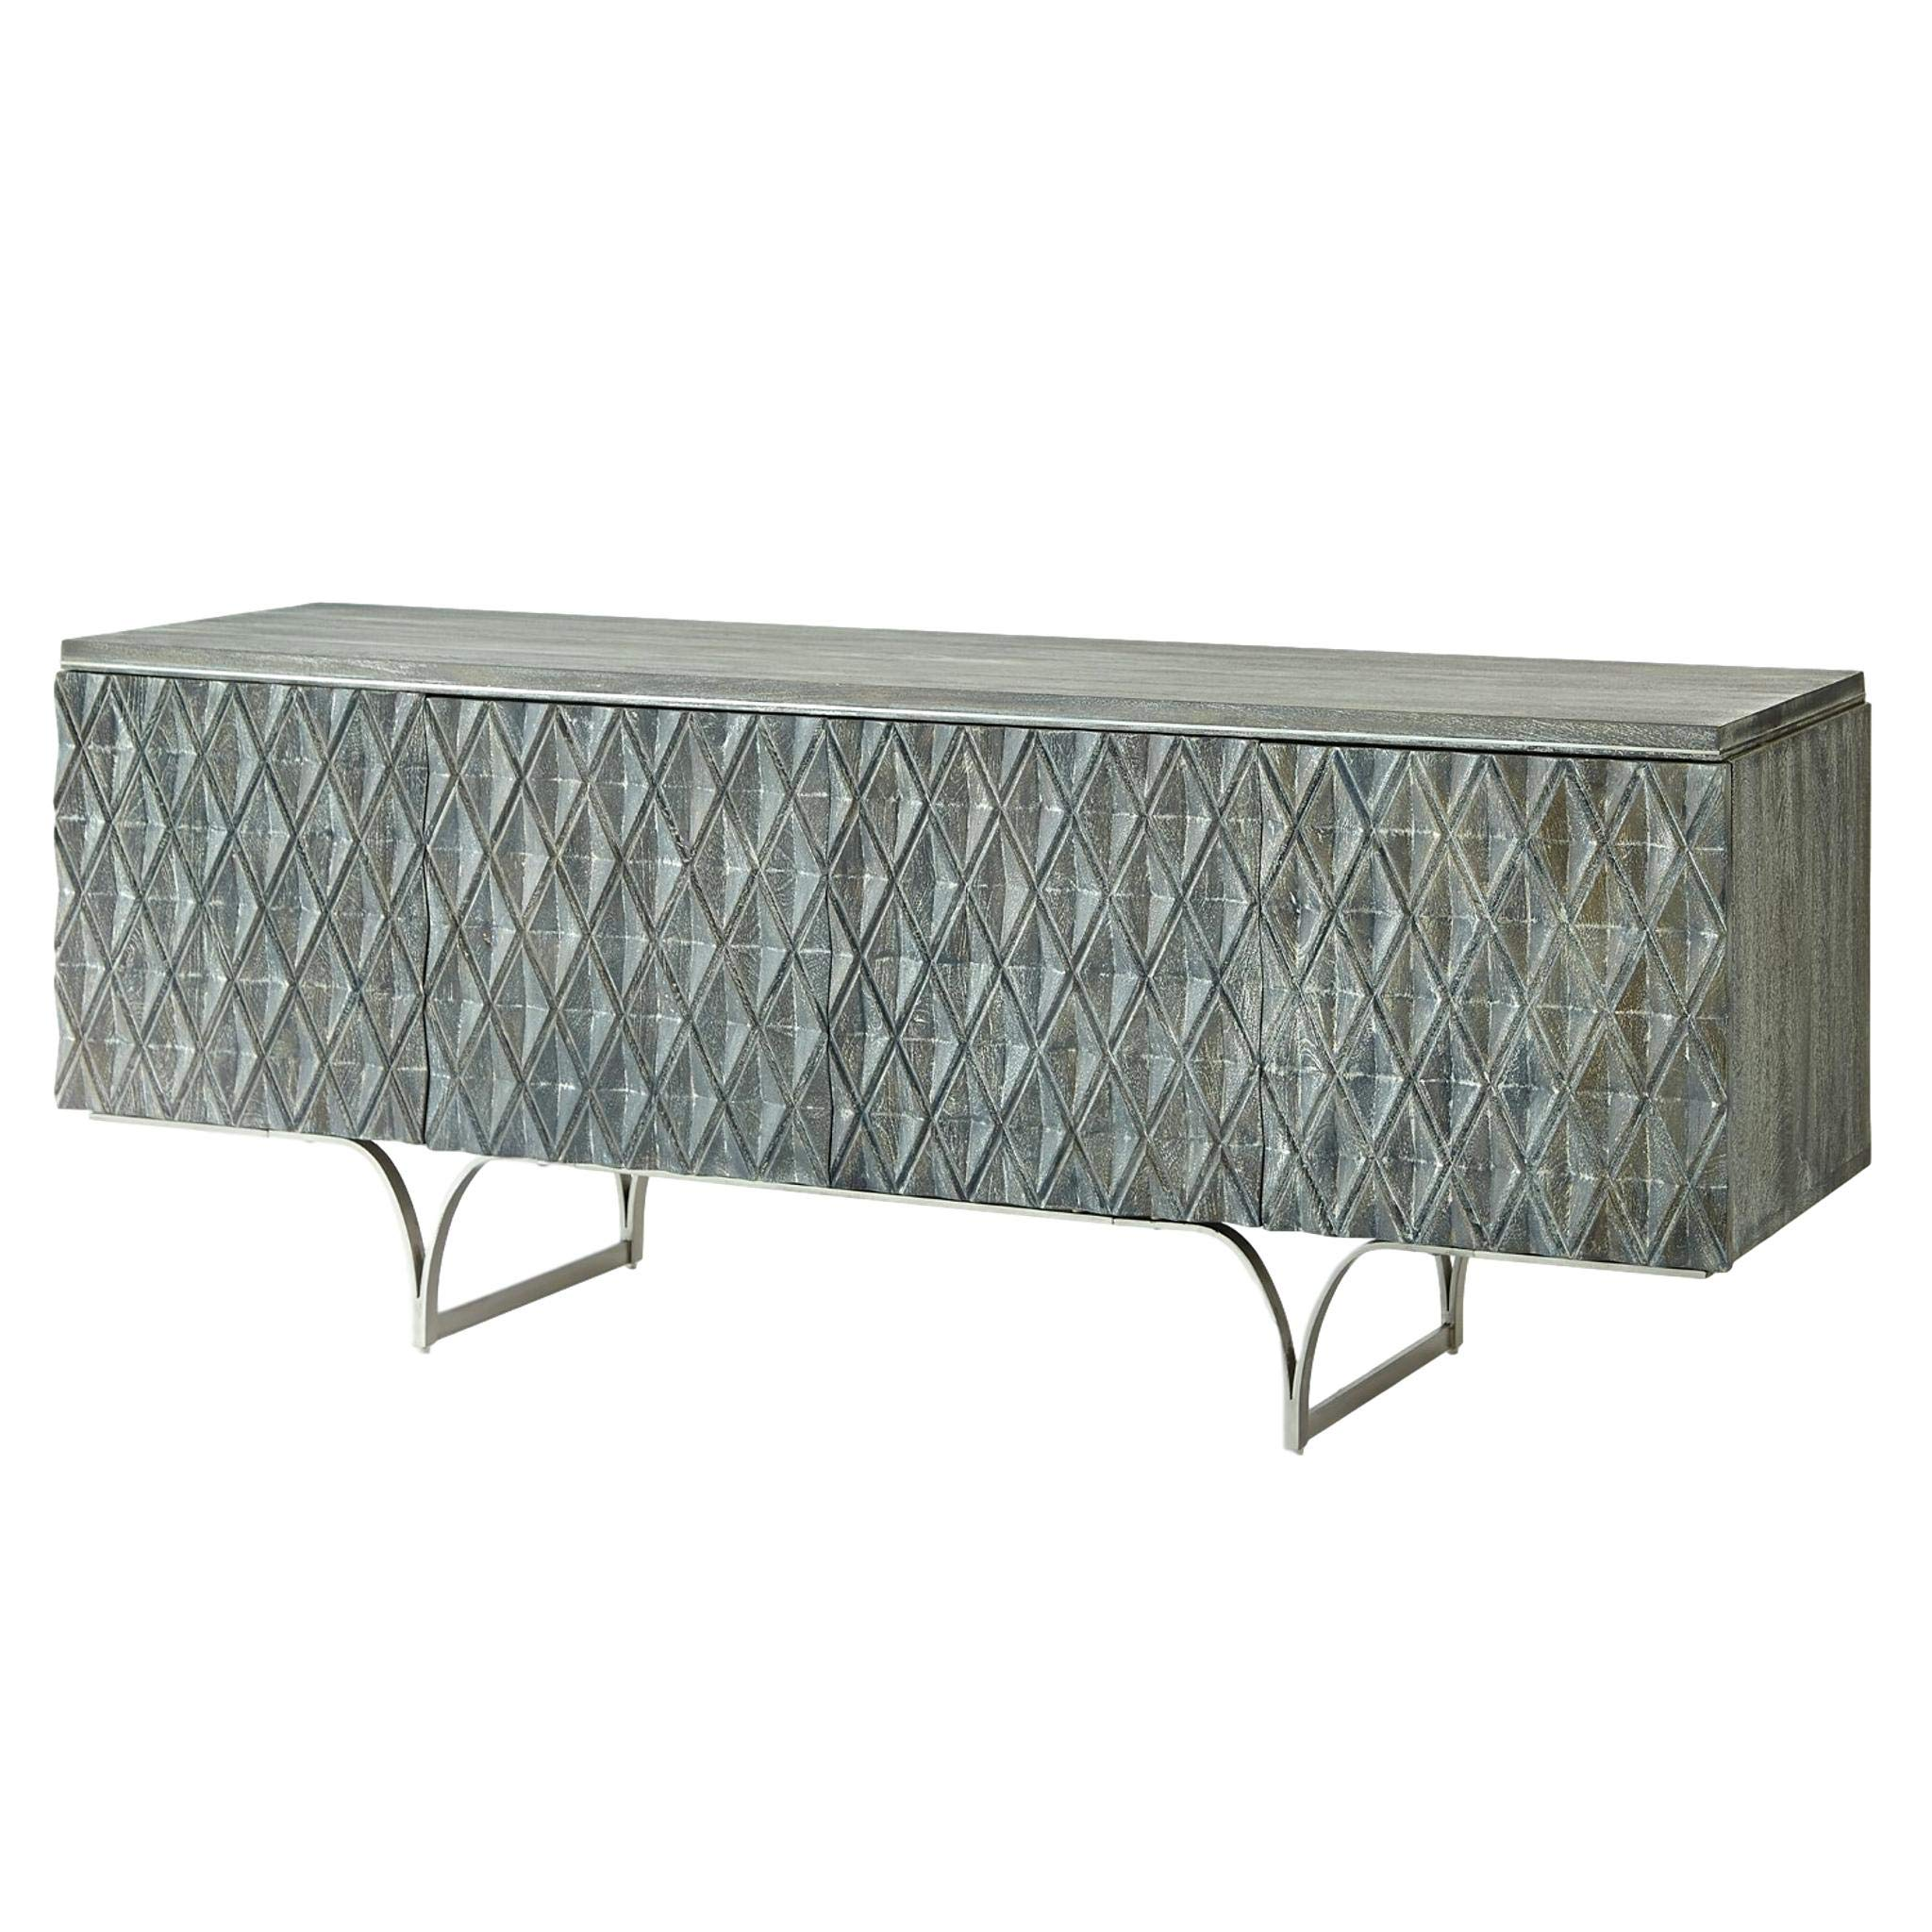 Global Views Carved Wood Diamond Harlequin Media Cabinet | Silver Gray Argyle Pattern Modern by Global Views